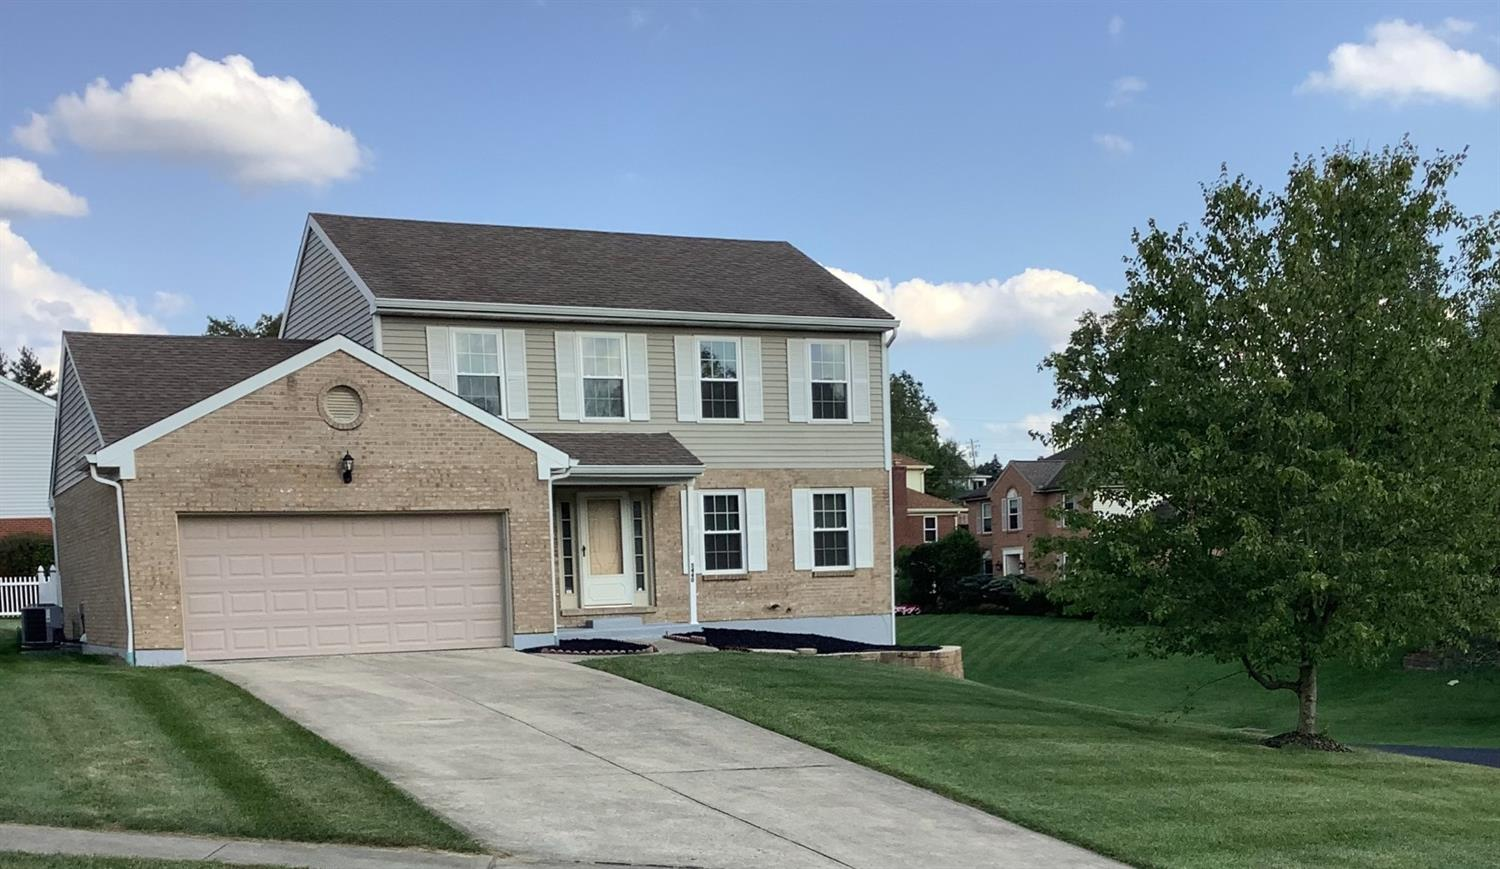 5440 Cecilia Court, Green Twp, Ohio 45247, 3 Bedrooms Bedrooms, 8 Rooms Rooms,3 BathroomsBathrooms,Single Family Residence,For Sale,Cecilia,1715733